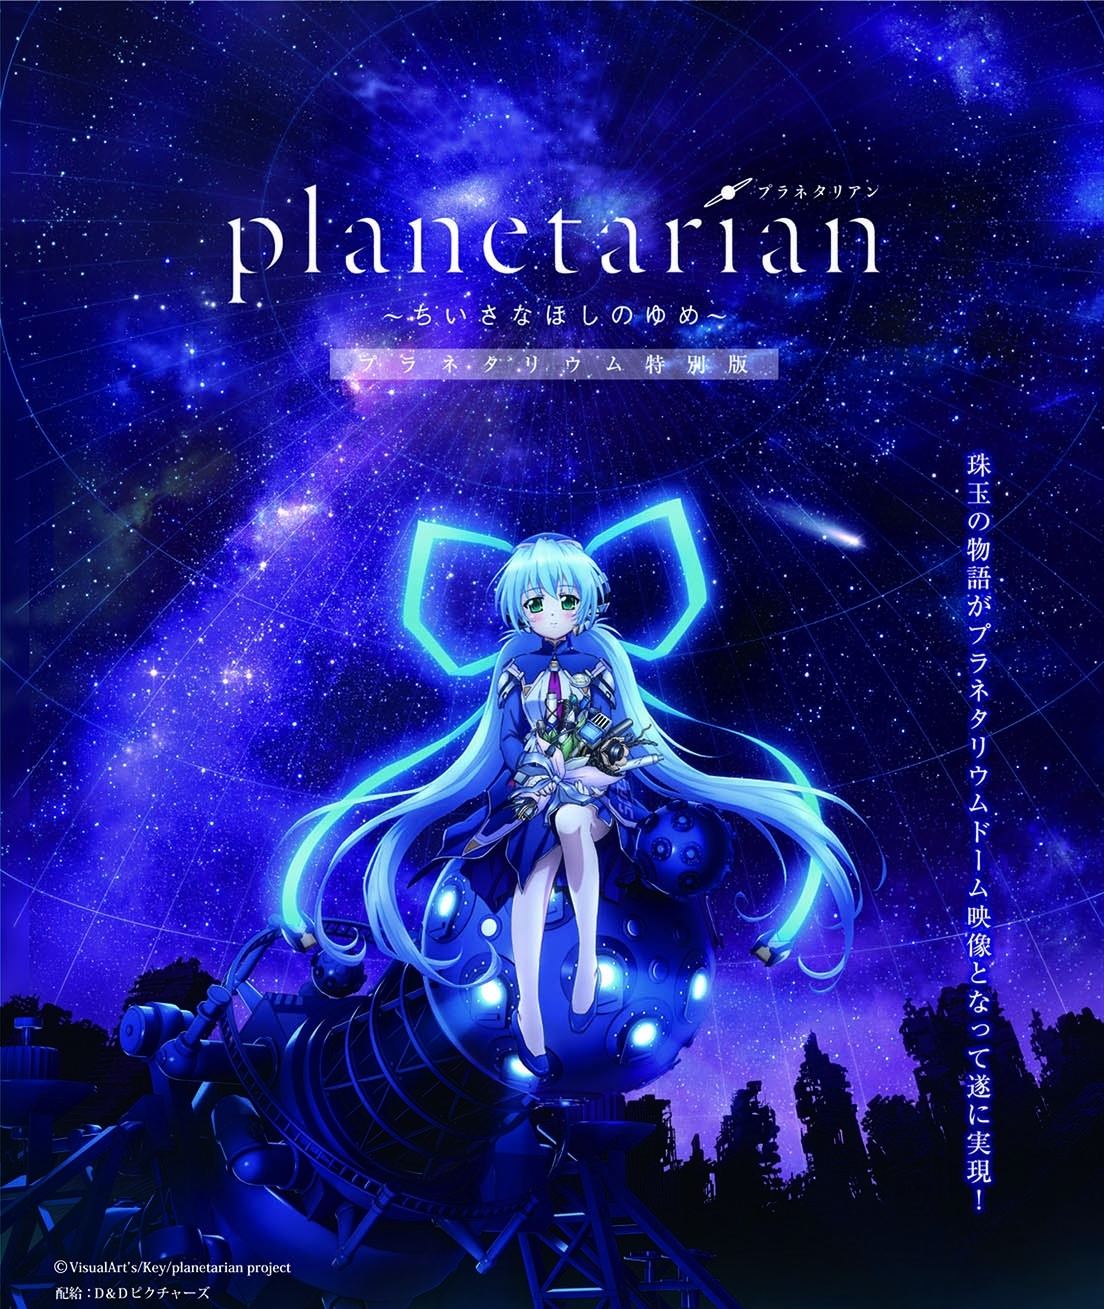 (C)VisualArts/Key/planetarian project